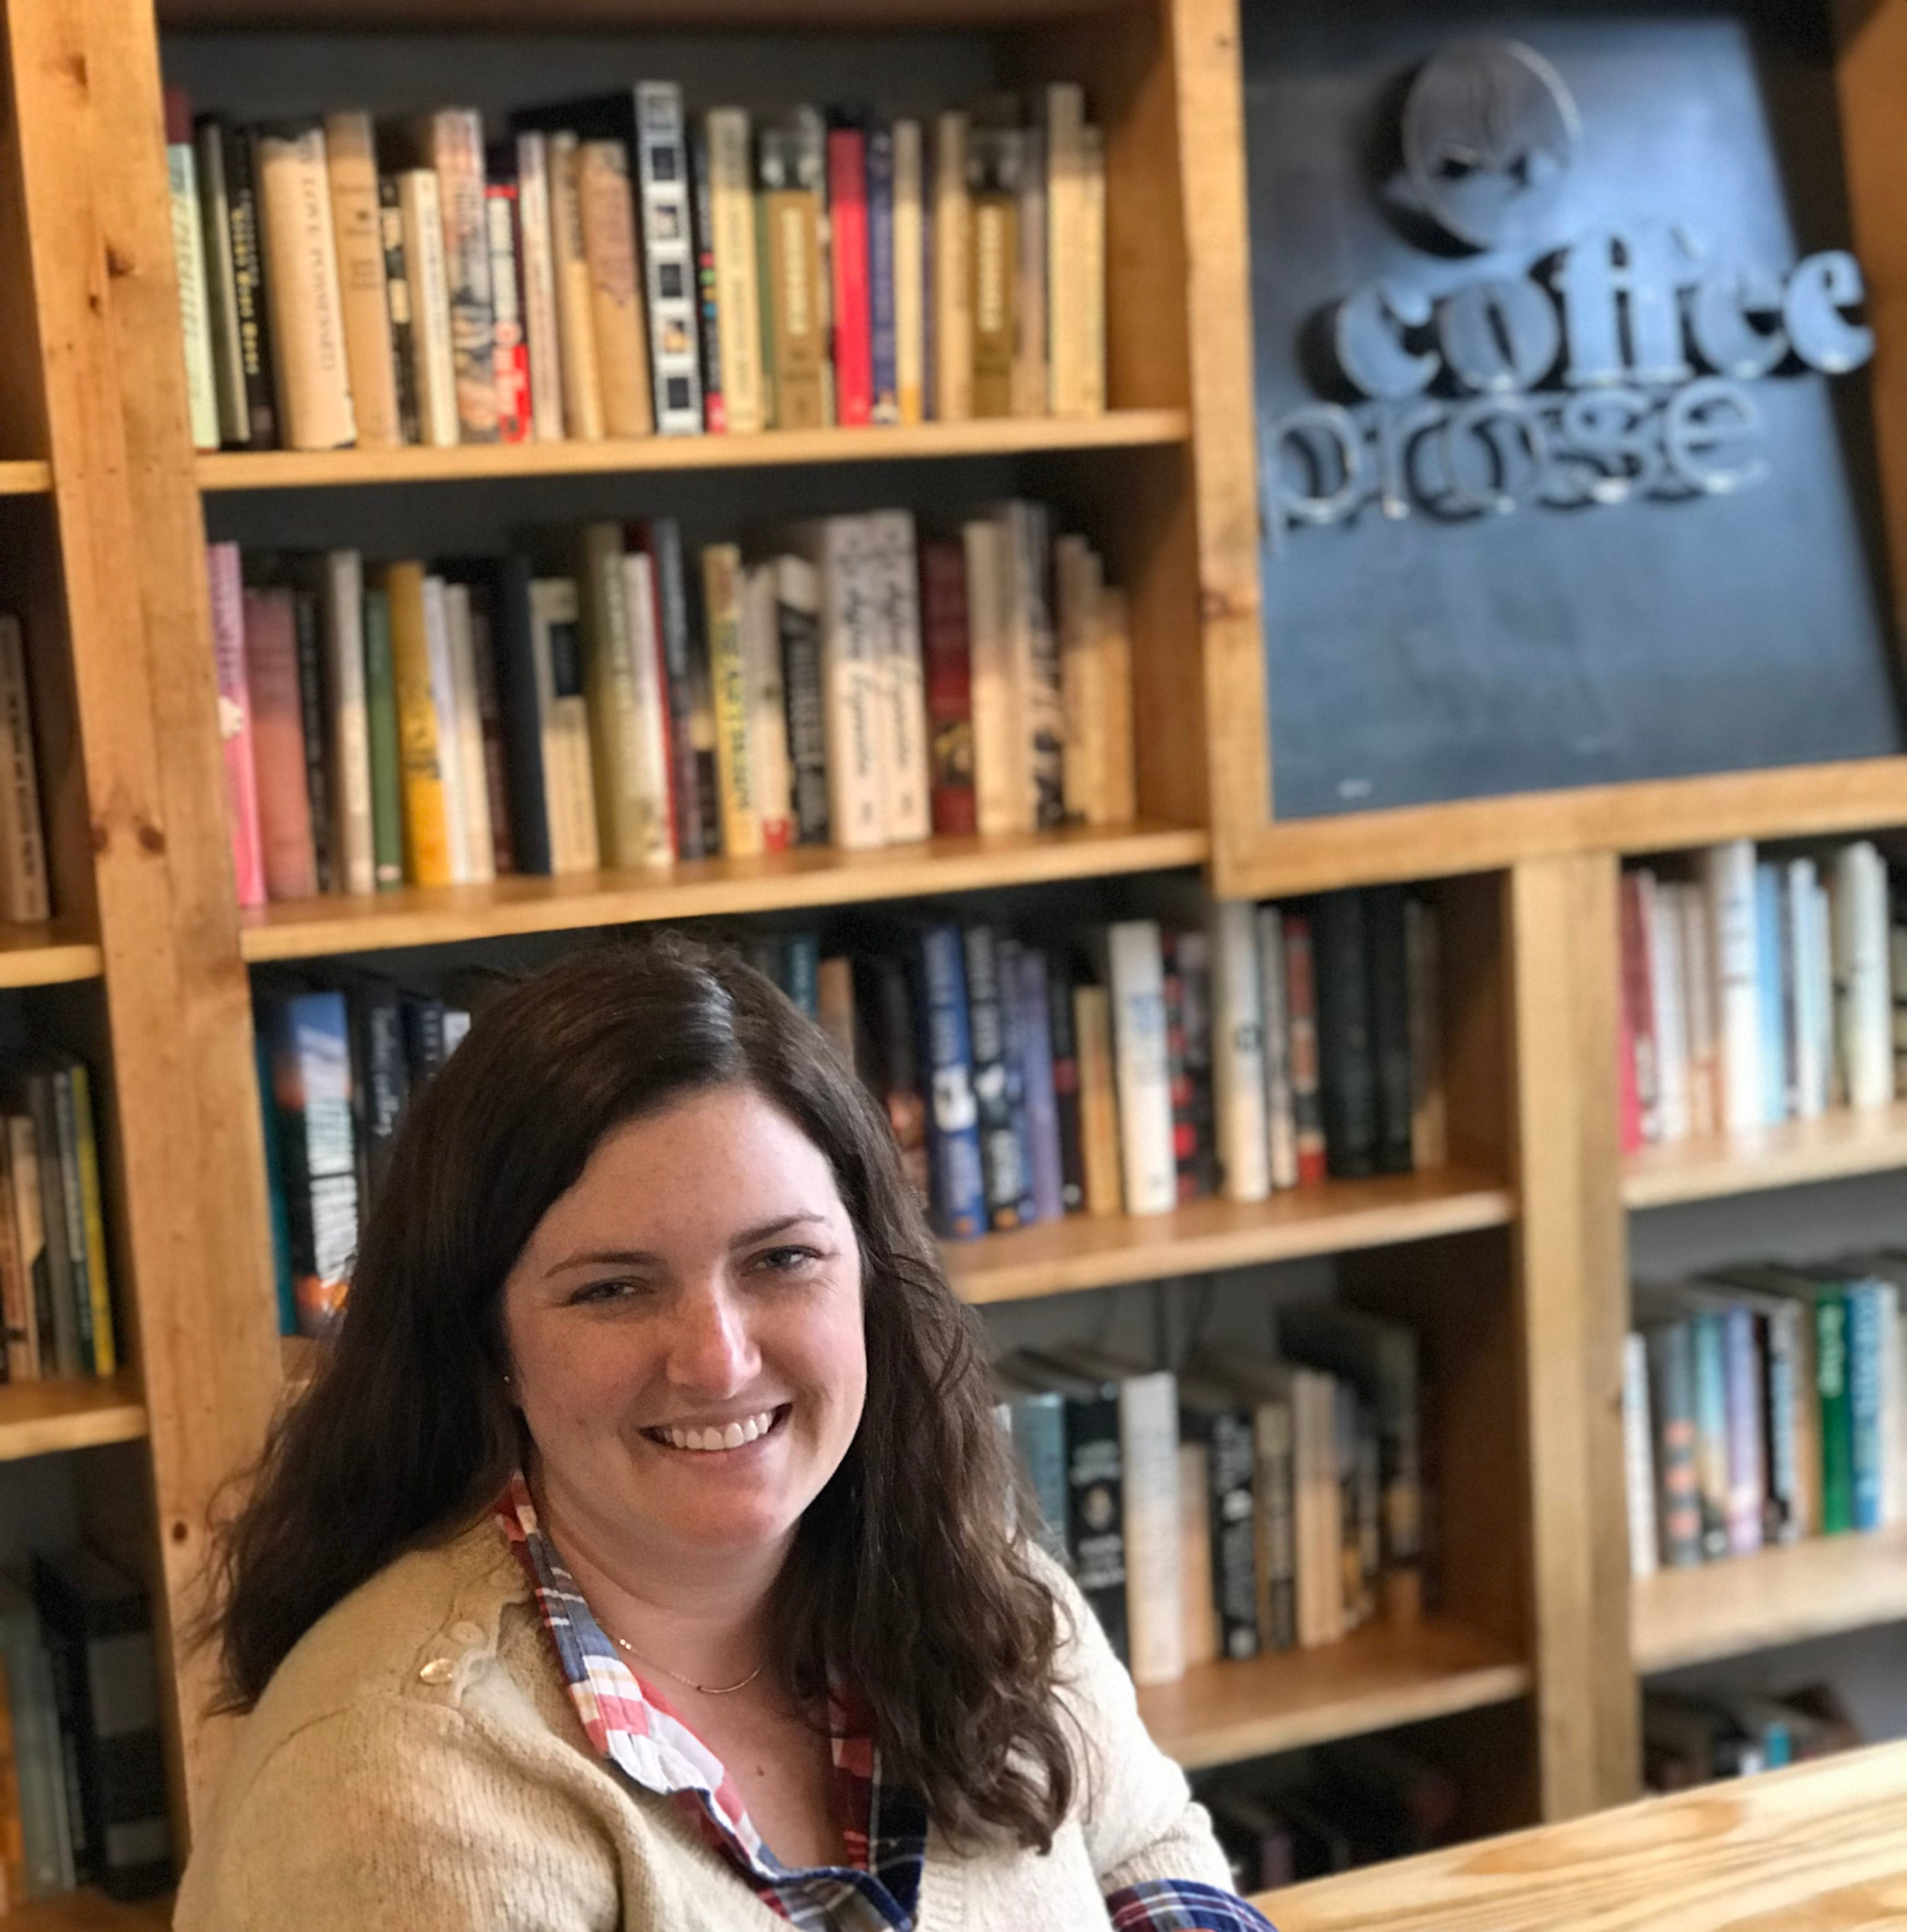 Books, coffee and community: Coffee Prose offers something new to Jackson